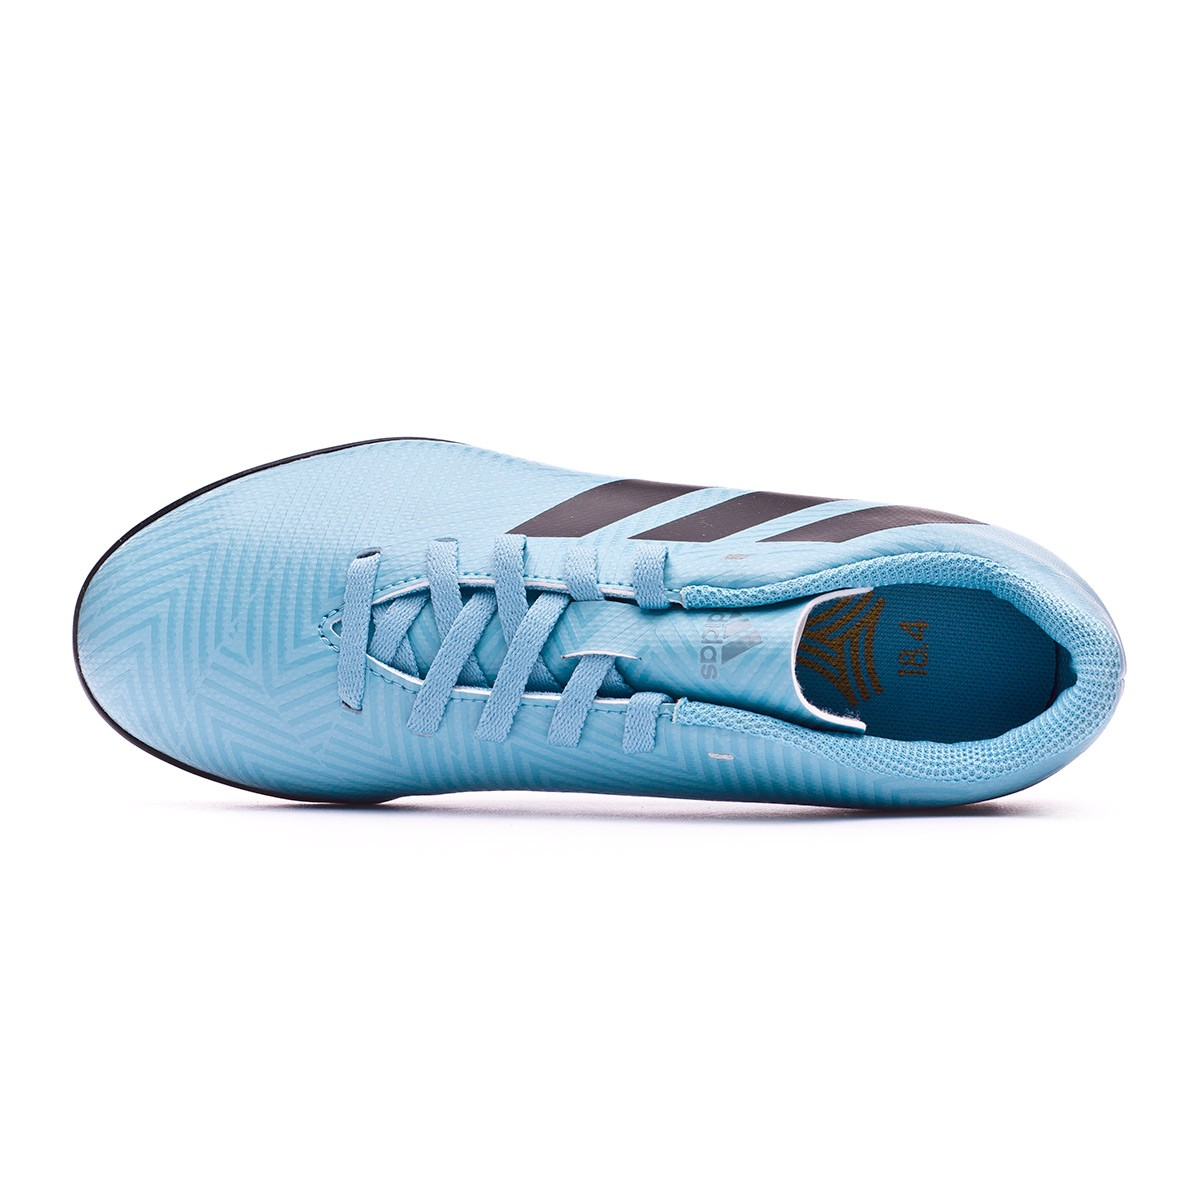 huge discount f47ef 63198 Football Boot adidas Kids Nemeziz Messi Tango 18.4 Turf Ash blue ...